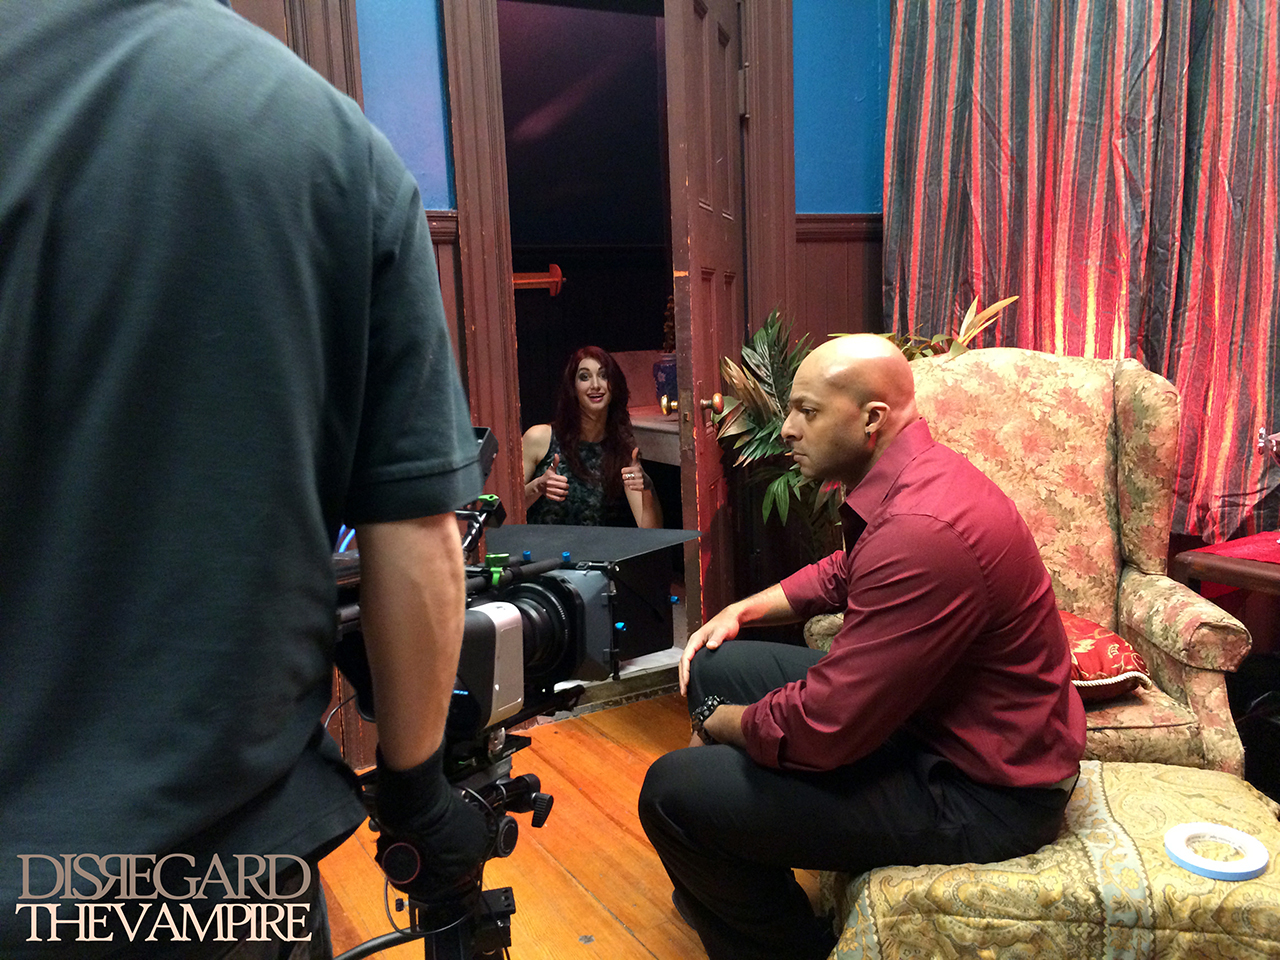 Geena Matuson (@geenamatuson) and Jose Gonsalves on set of Disregard The Vampire, 2014.